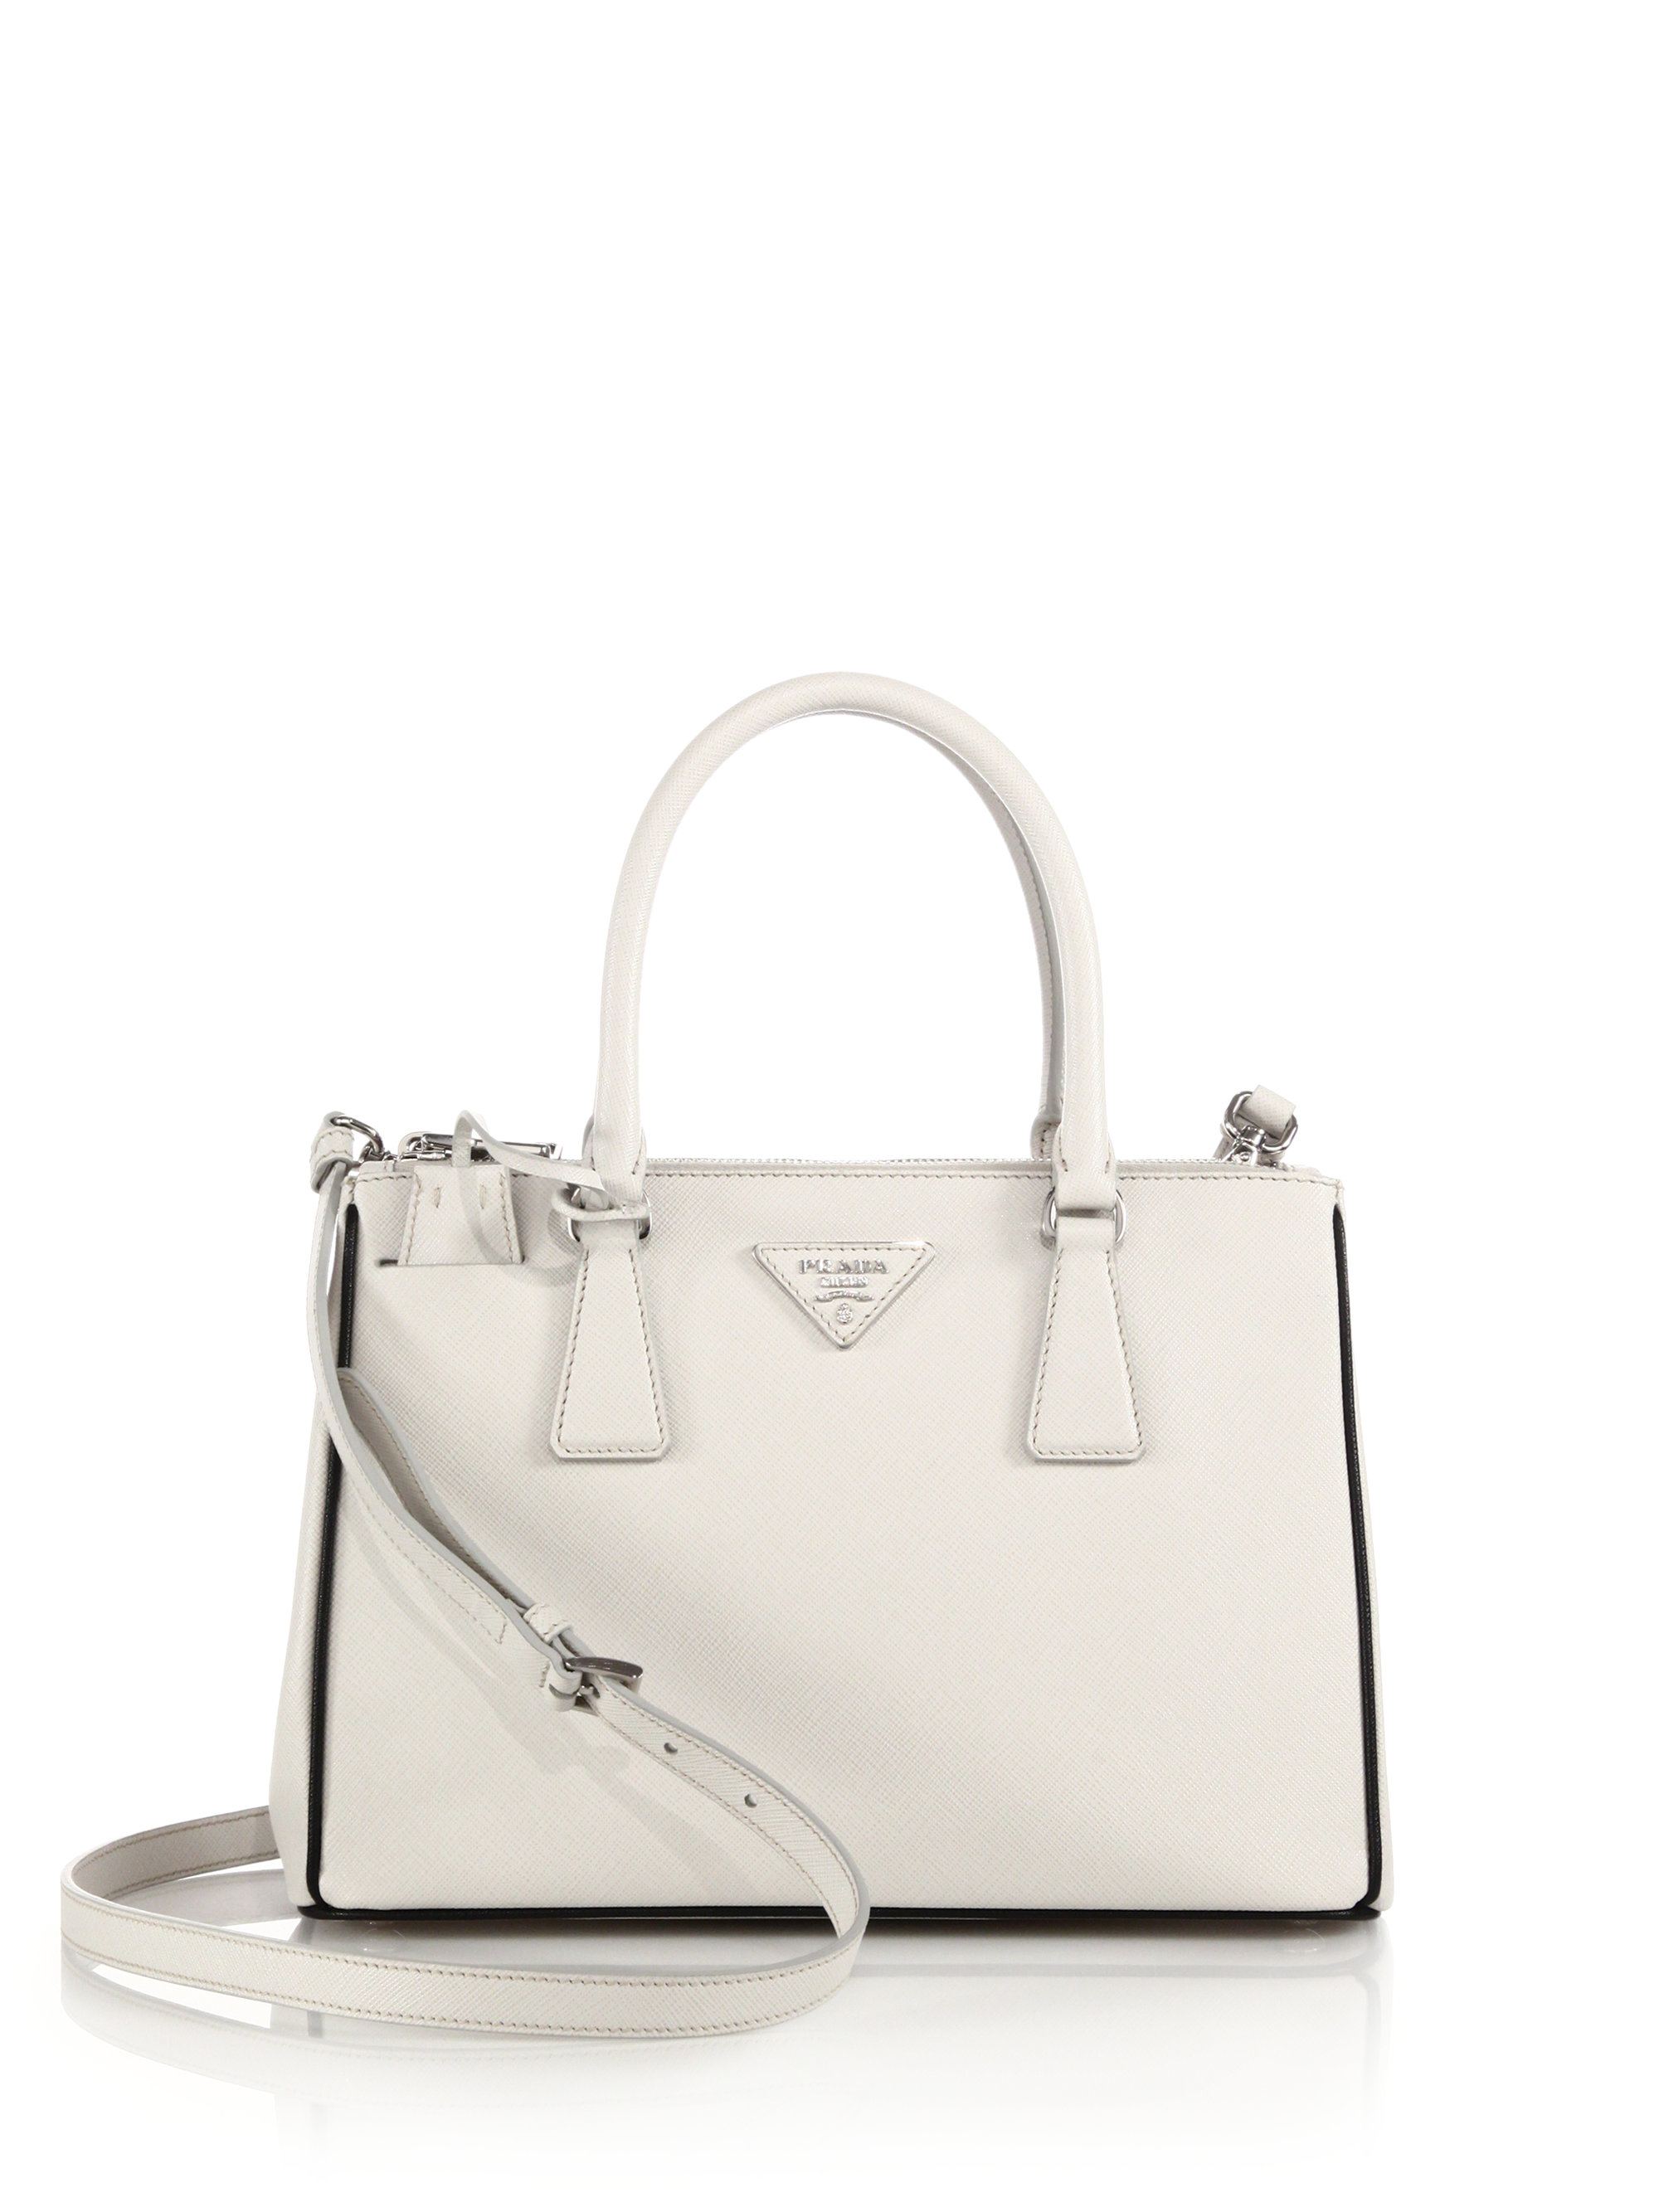 d1c4dc254c5f Lyst - Prada Saffiano Lux Small Double-zip Tote in White